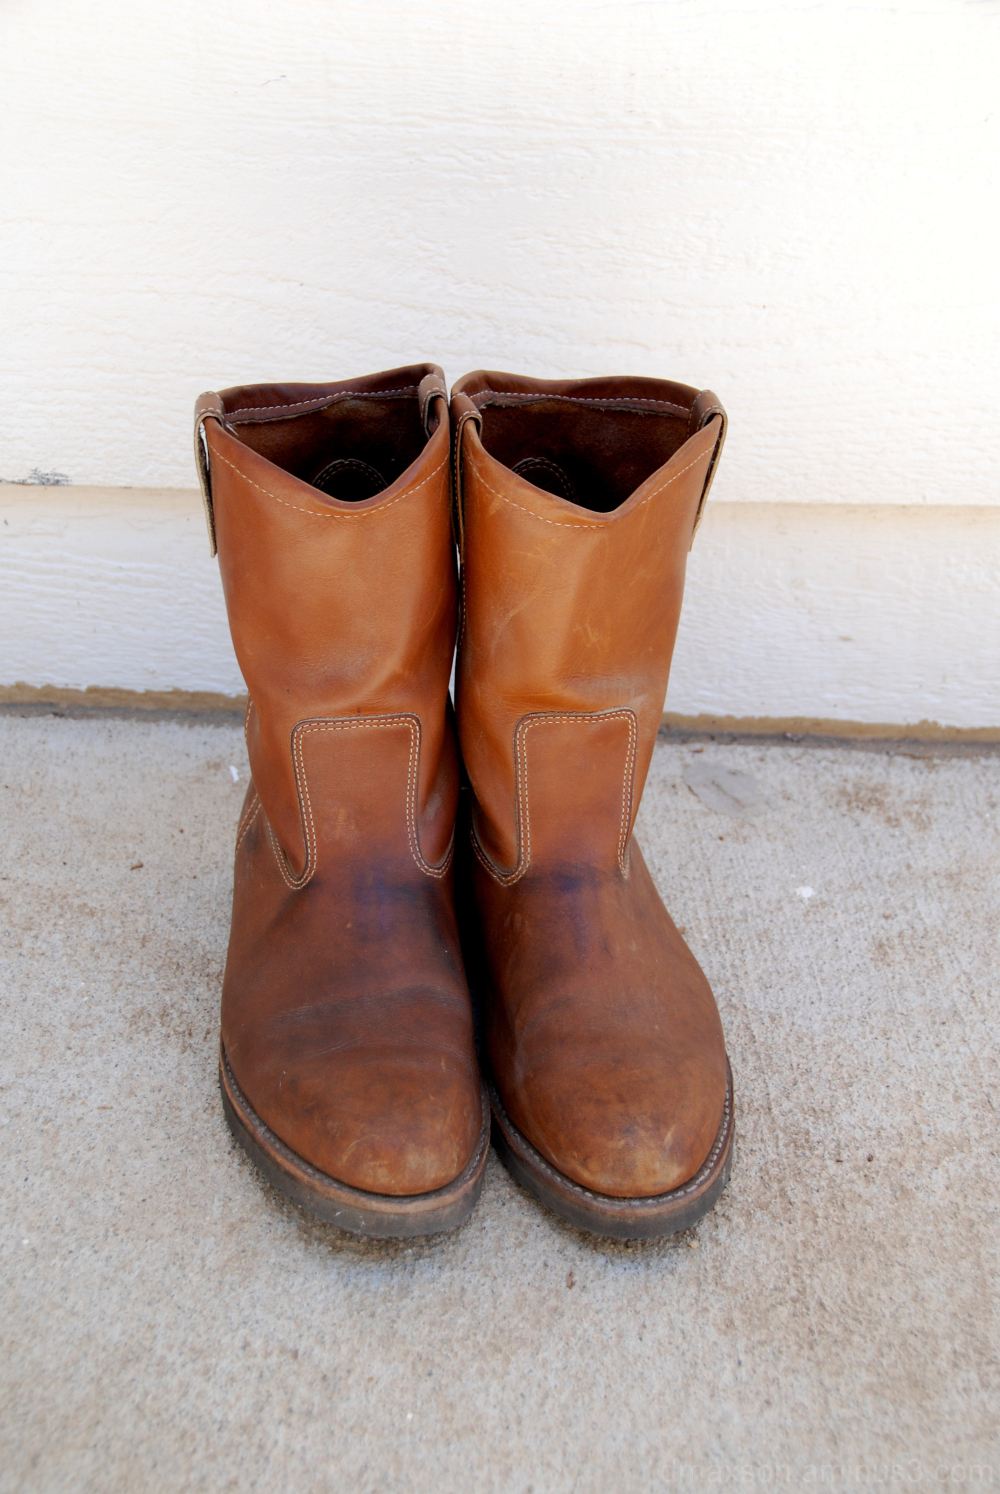 My father's boots